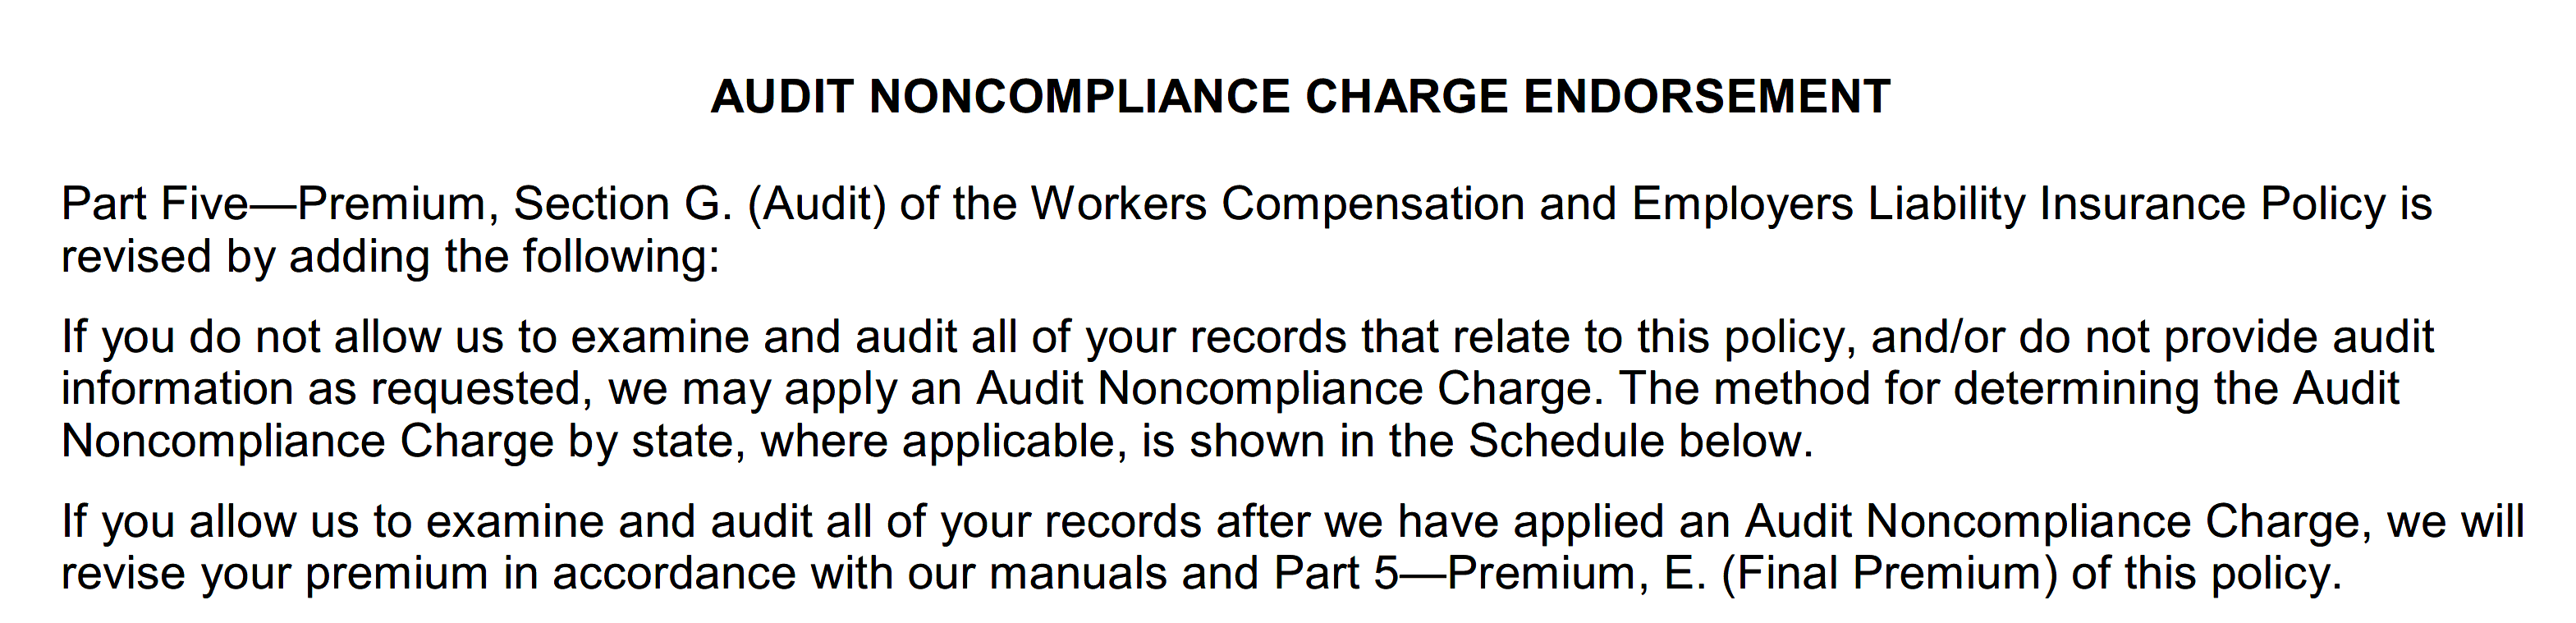 Workers Compensation Audit Noncompliance Surcharge Equal To Two